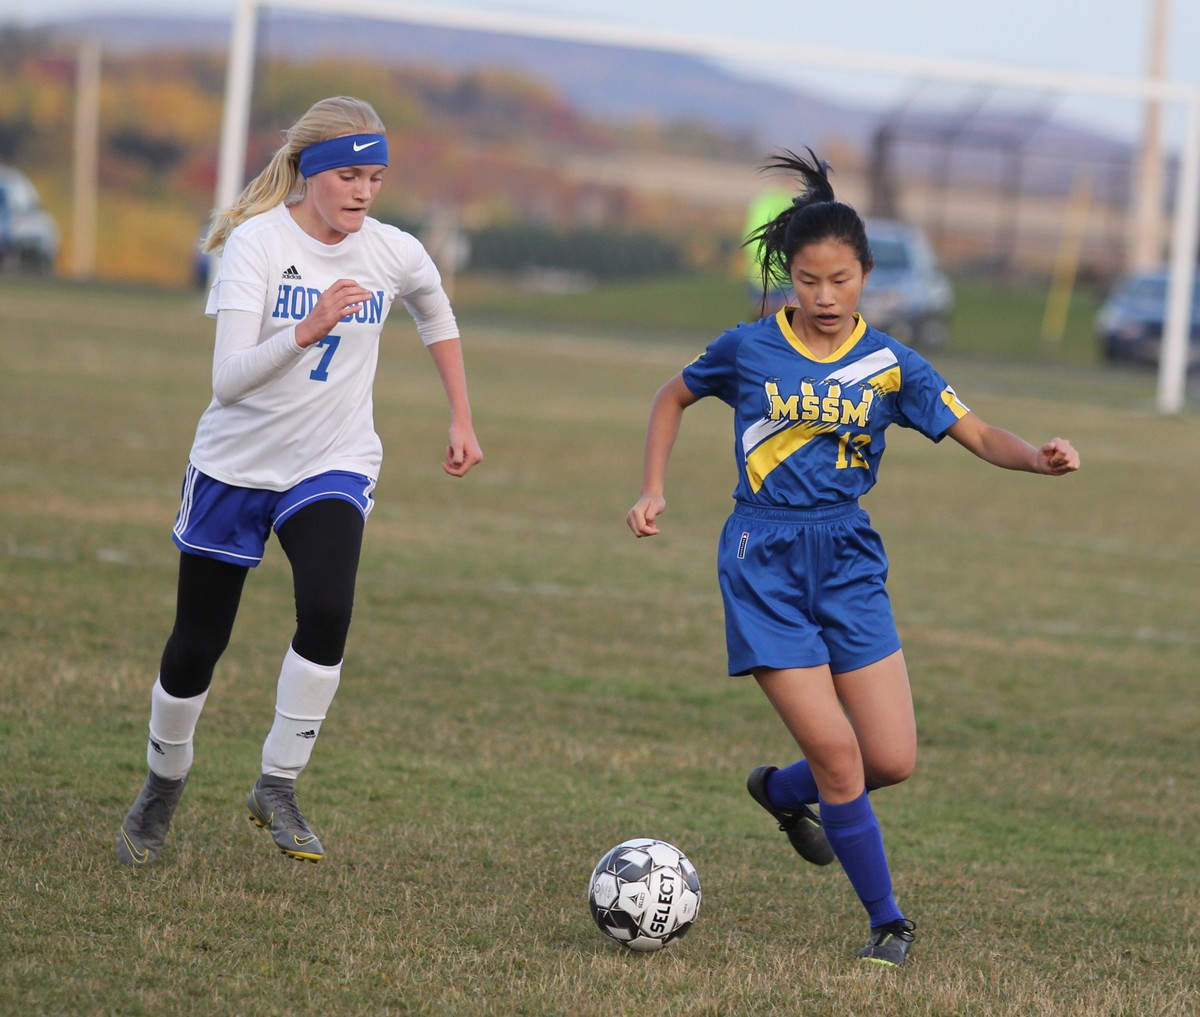 Girls Soccer Matches - October 11 and 12, 2019